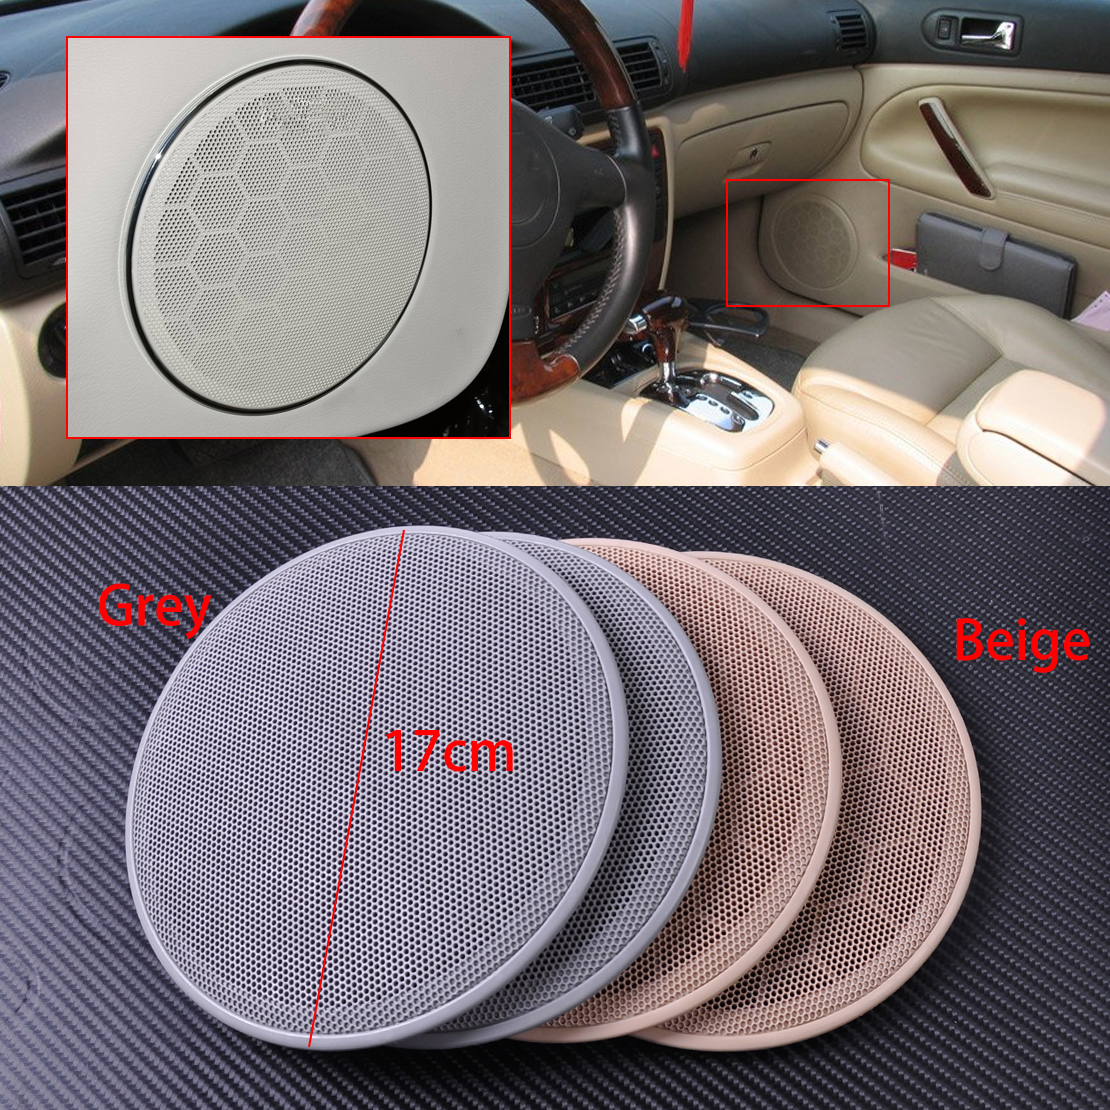 hight resolution of details about new door speaker cover grill fit for vw jetta mk4 passat b5 golf gti 1999 2005